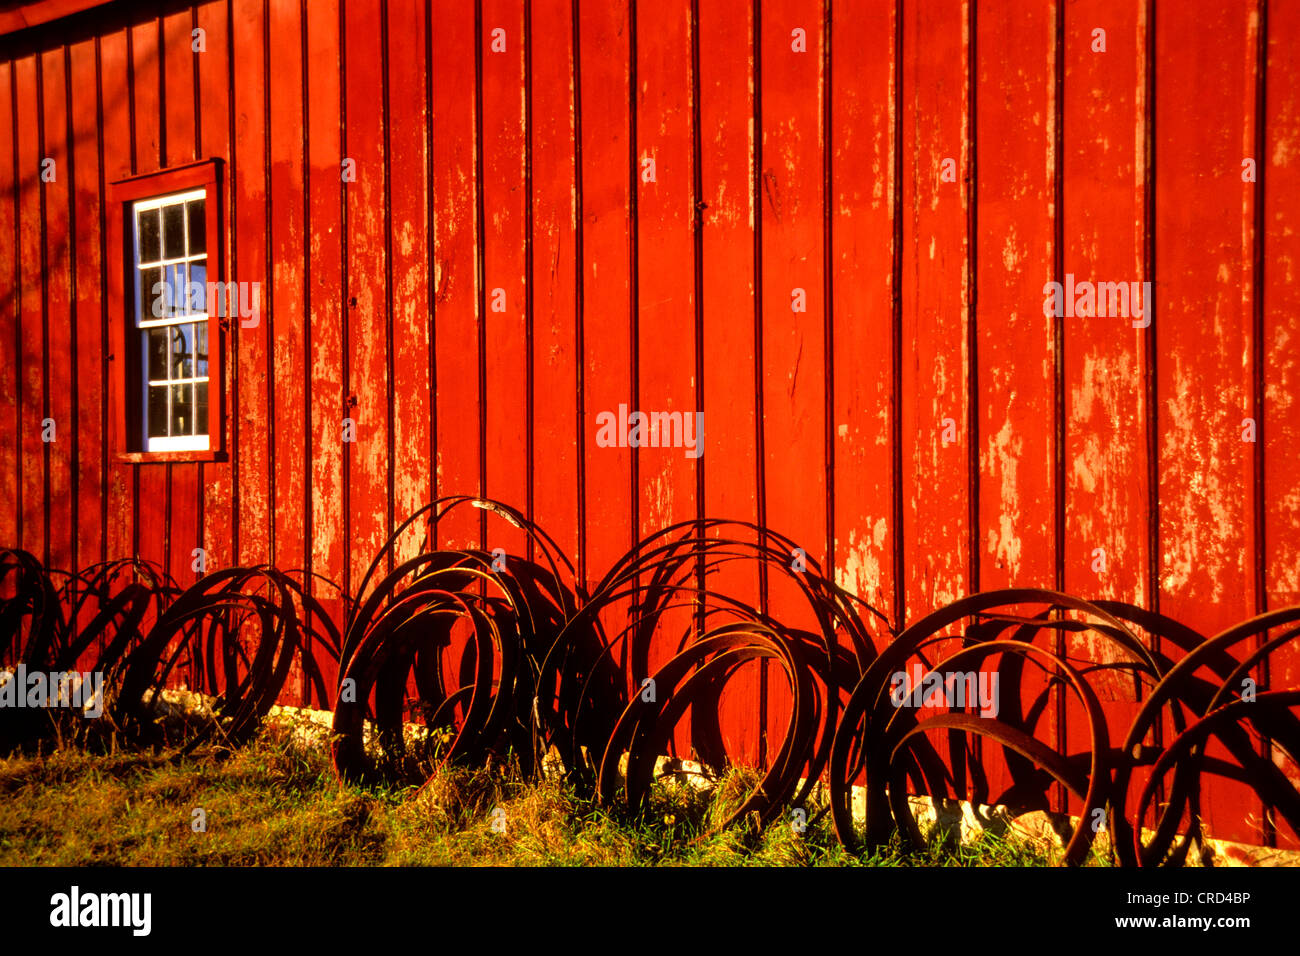 Wagon Wheel iron tires line the side of the wheelwrights shop at Old World Wisconsin in Waukesha County, USA, Wisconsin - Stock Image